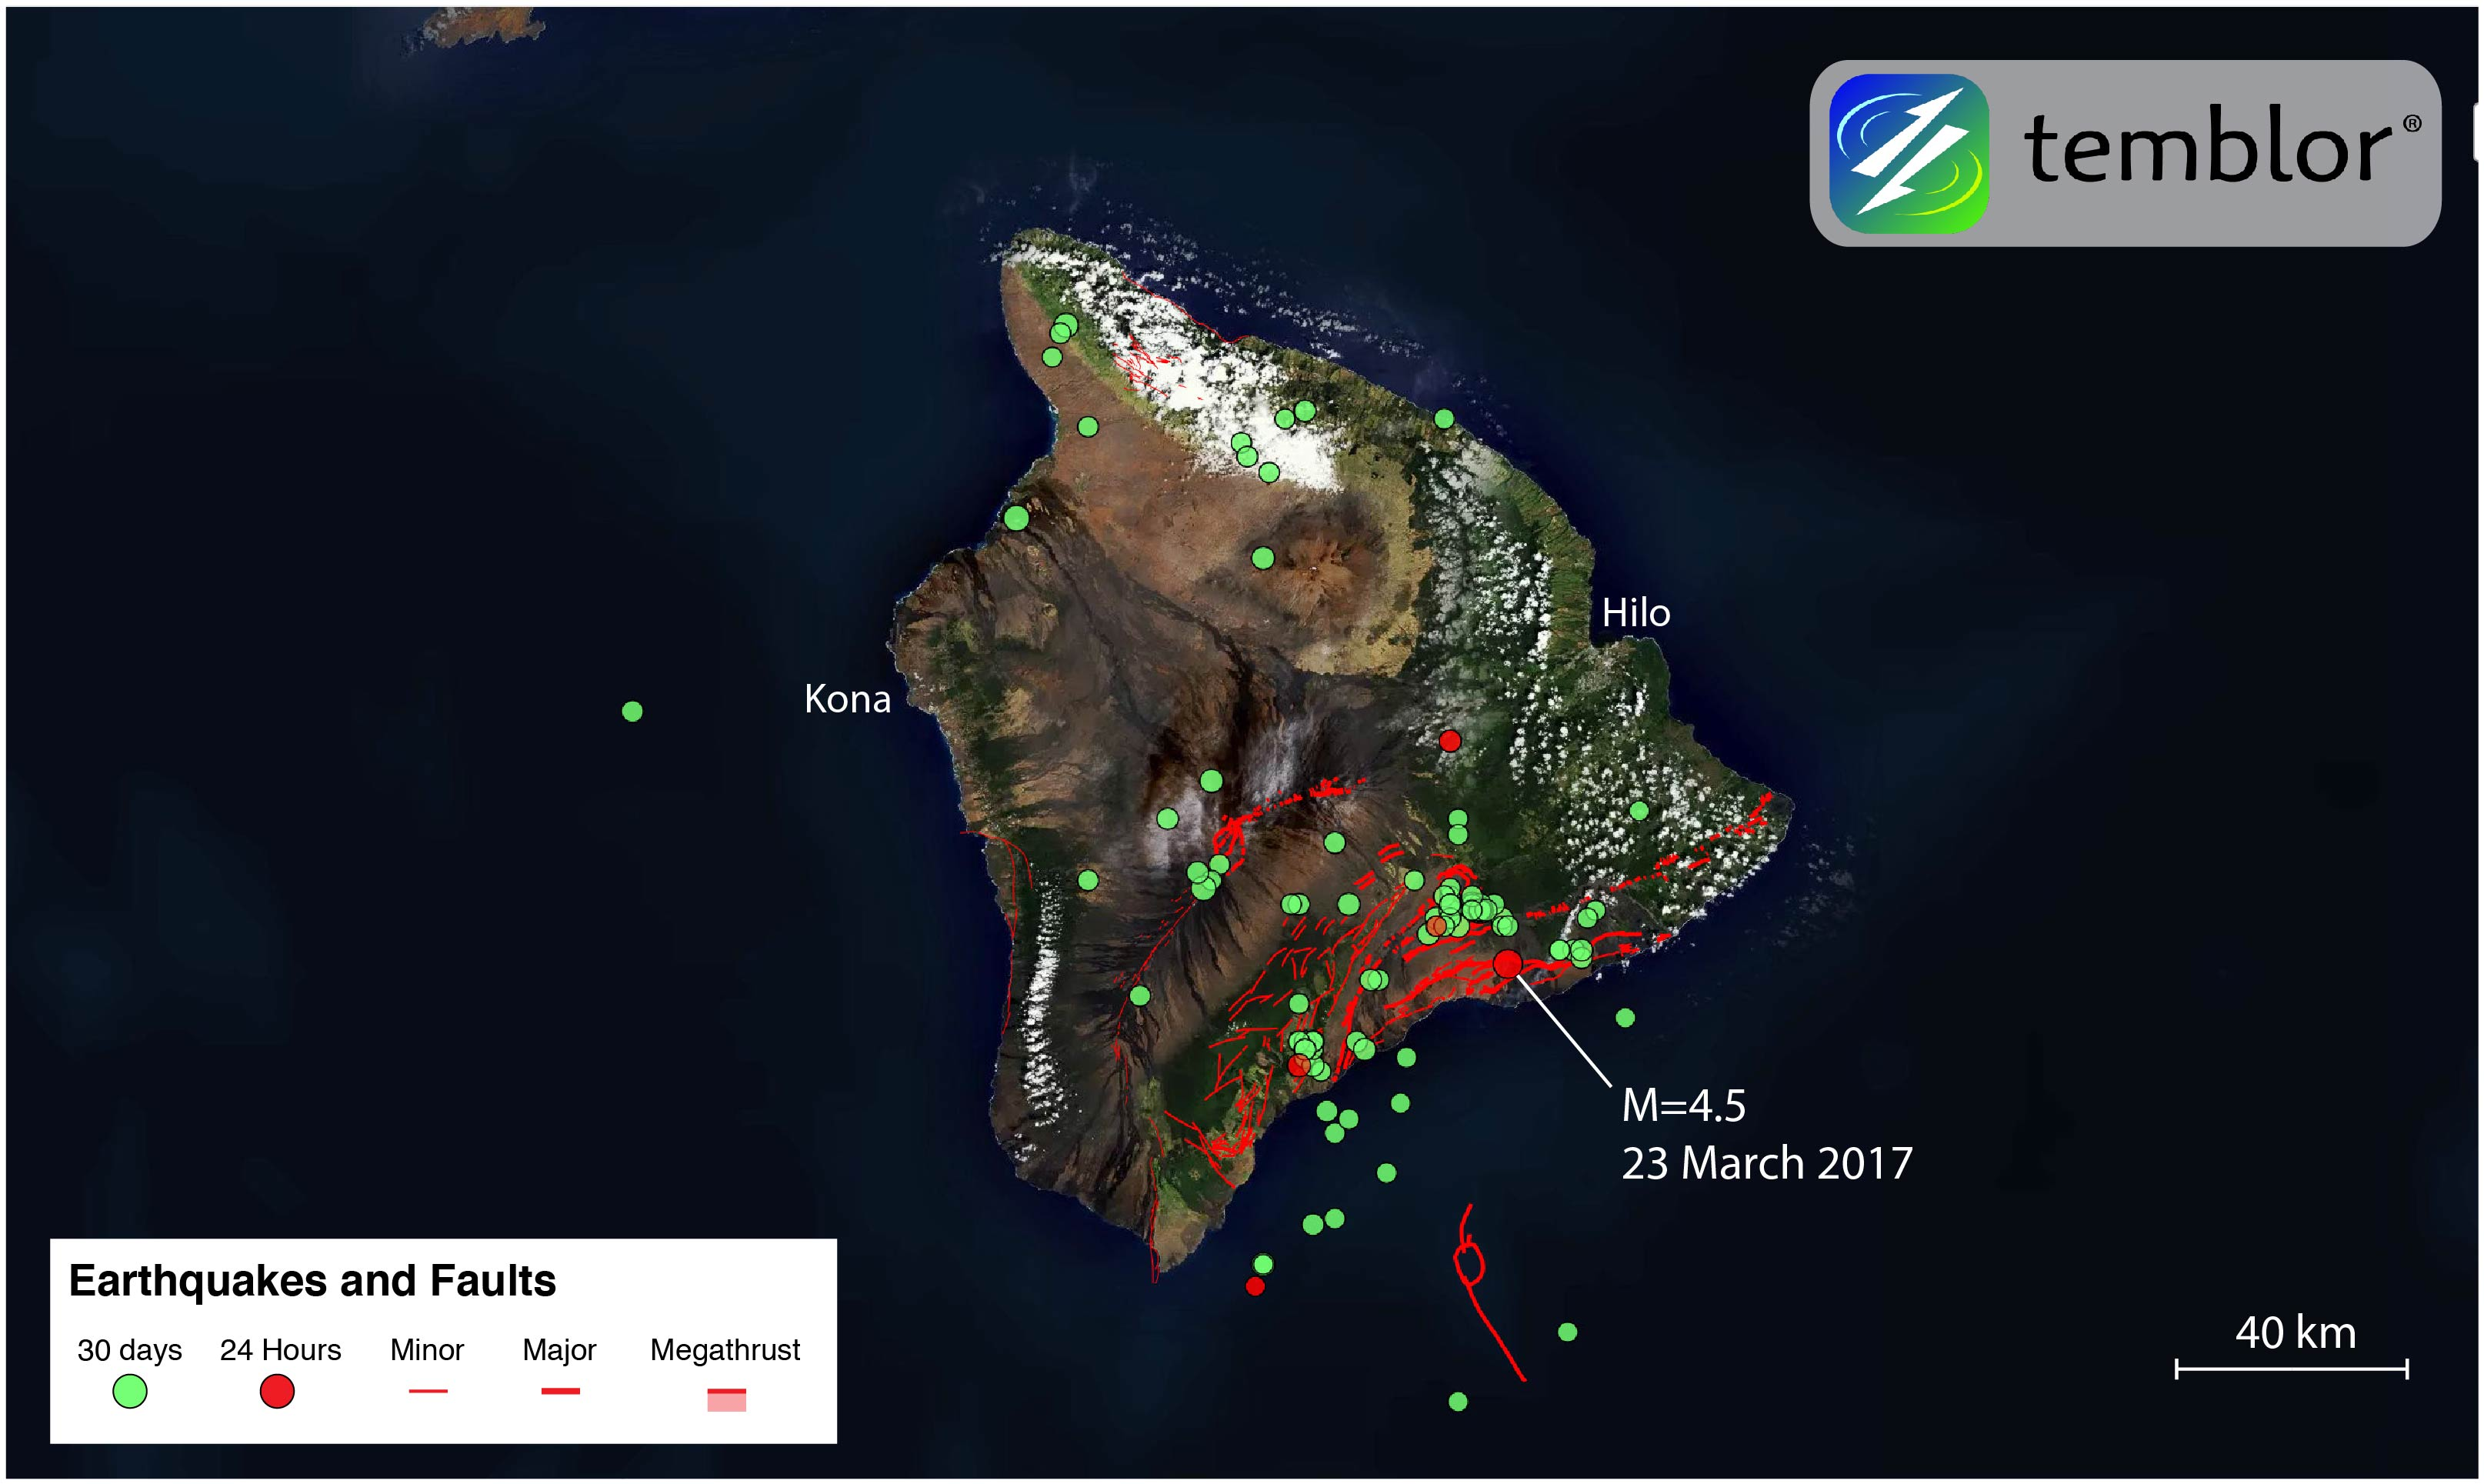 Hawaii is a group of eight major volcanic islands and 124 islets in the central pacific ocean. M=4.5 earthquake highlights Hawaii's tectonic past ...